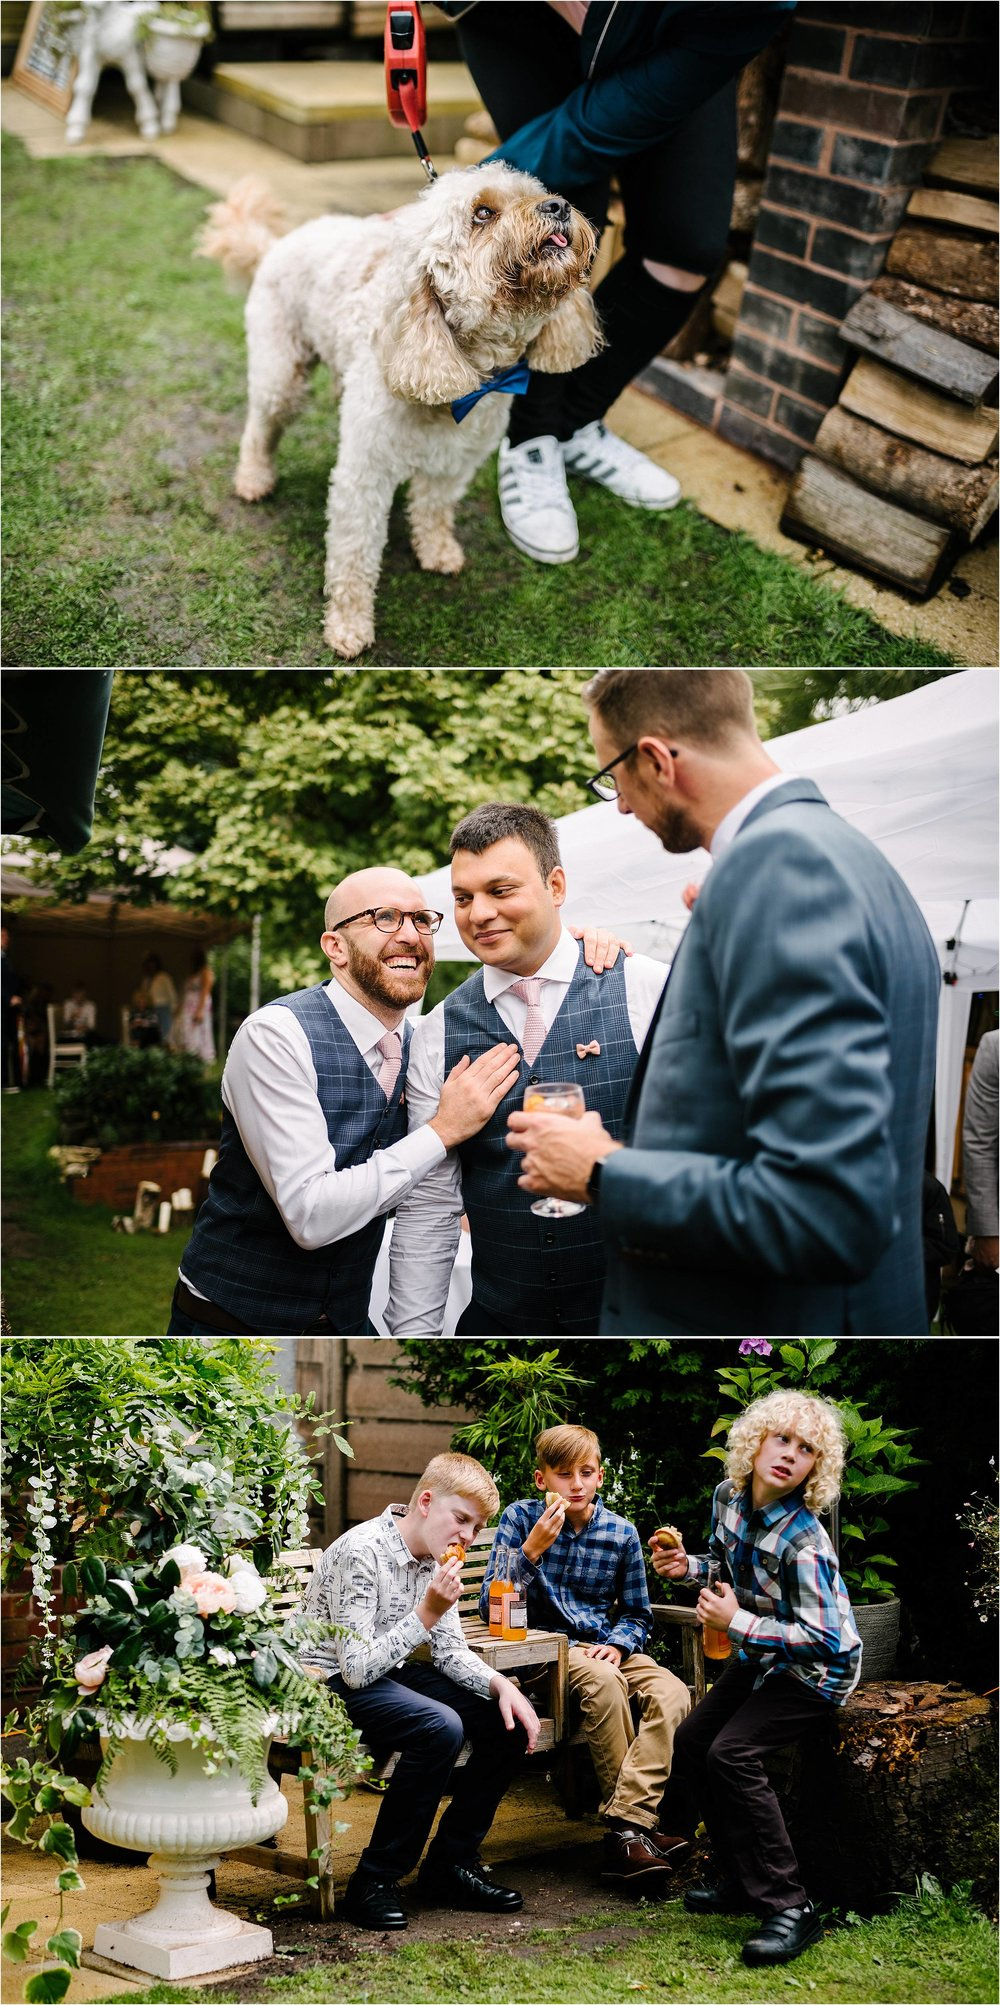 At home back garden wedding photographer_0038.jpg